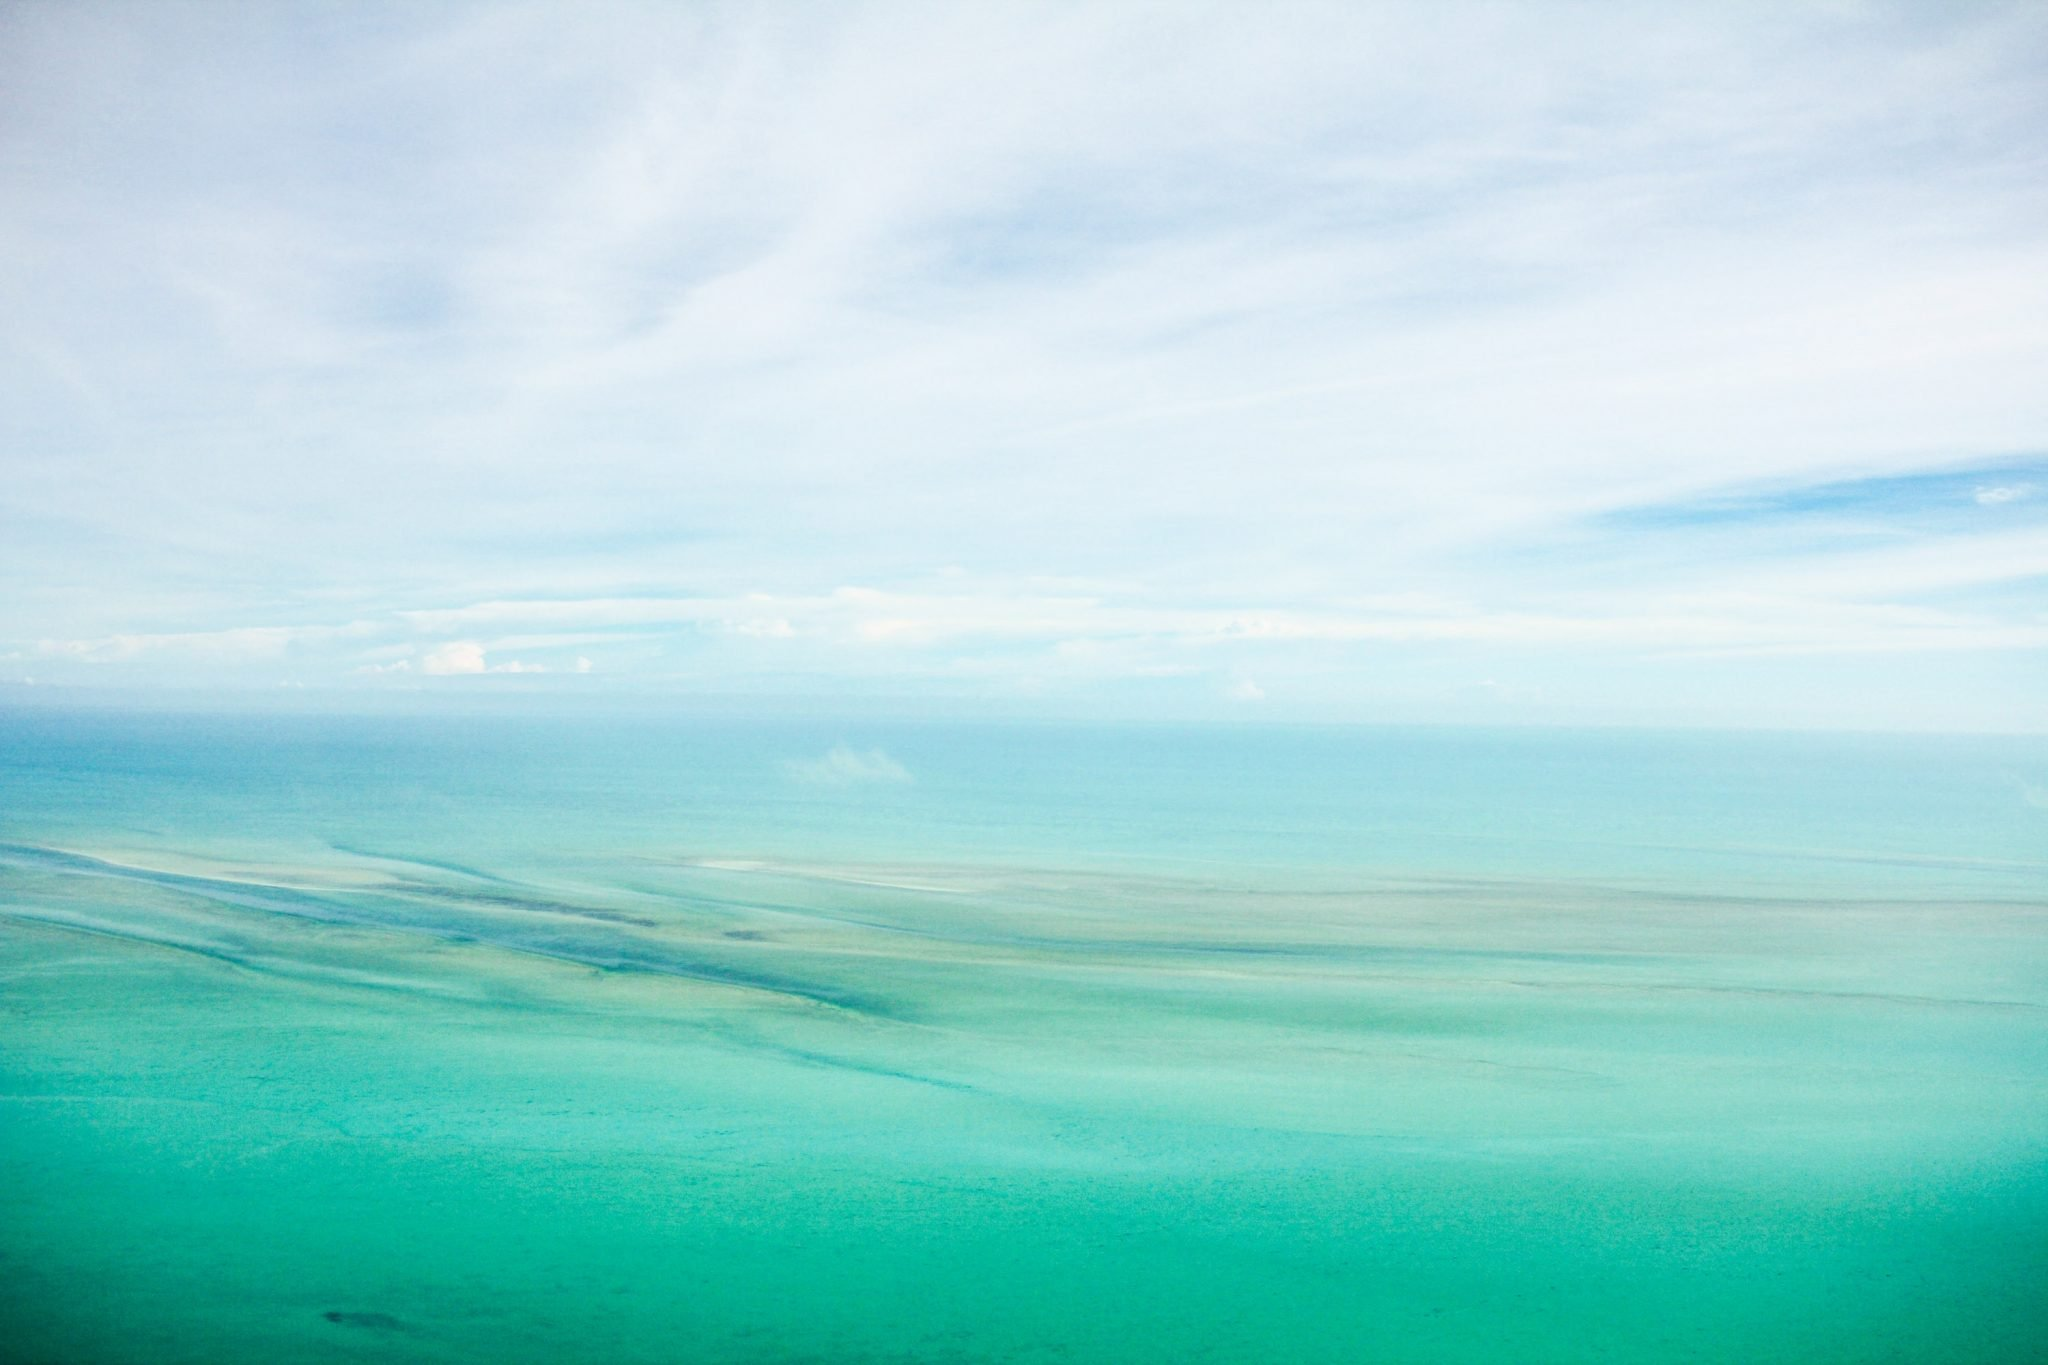 Turquoise waters of the Caribbean against a bue sky with puffy white clouds